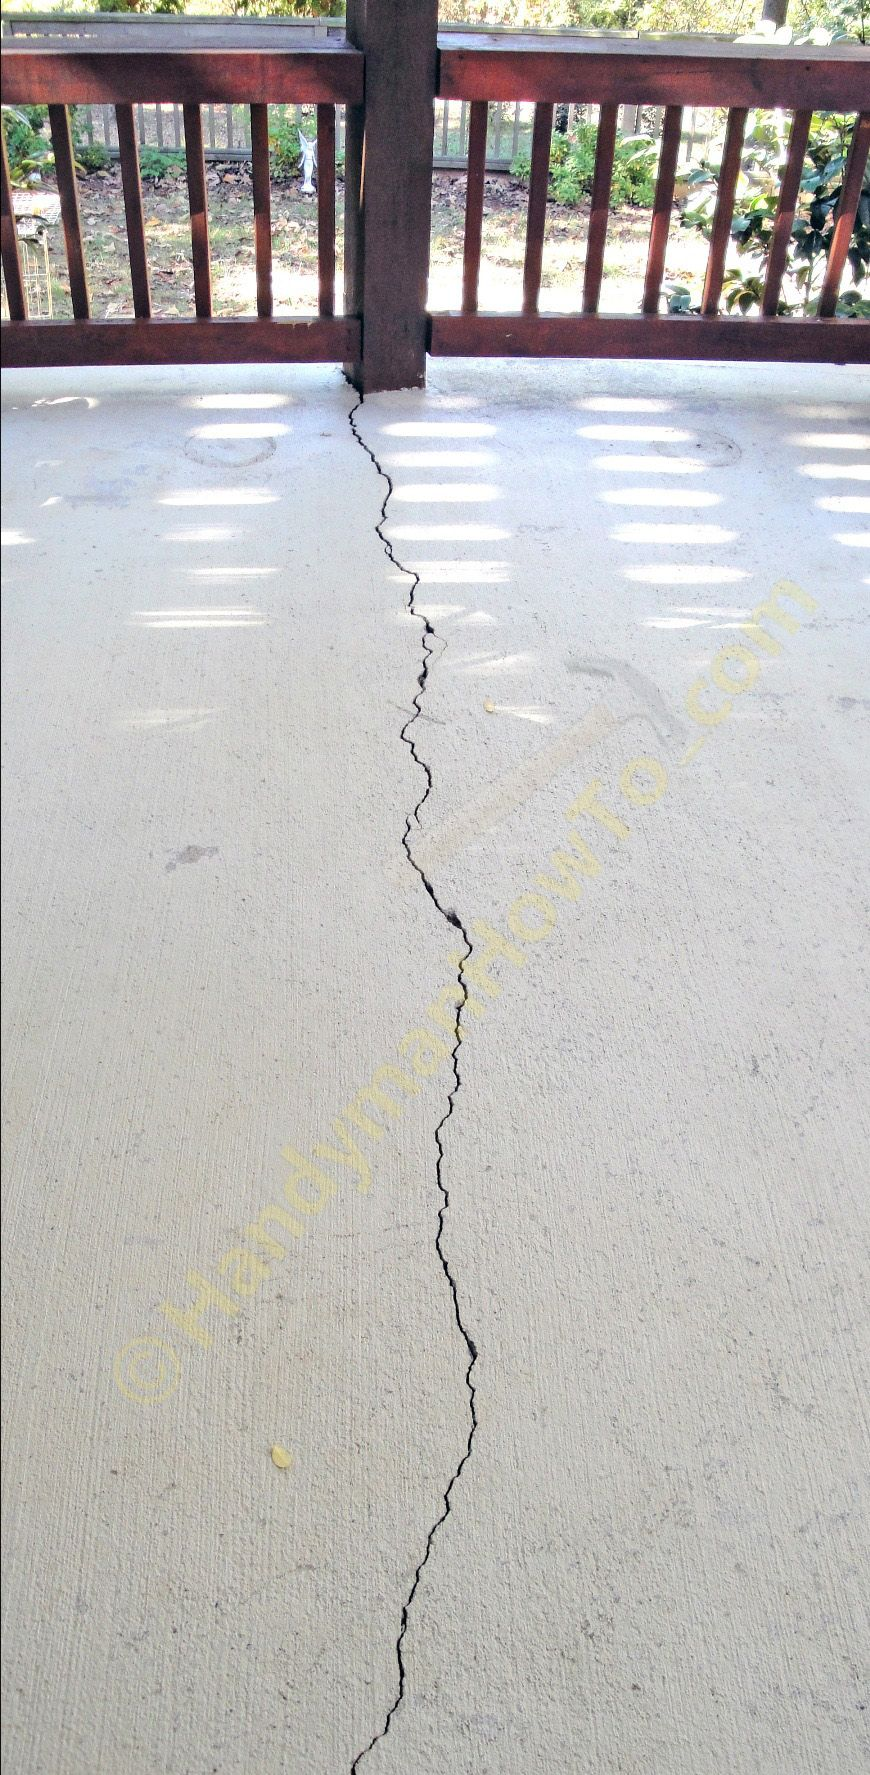 How To Repair A Cracked Concrete Patio Slab With QUIKRETE® Concrete Repair  No. 8620 Sanded Caulk With A Description Of Concrete Crack Repair Options.